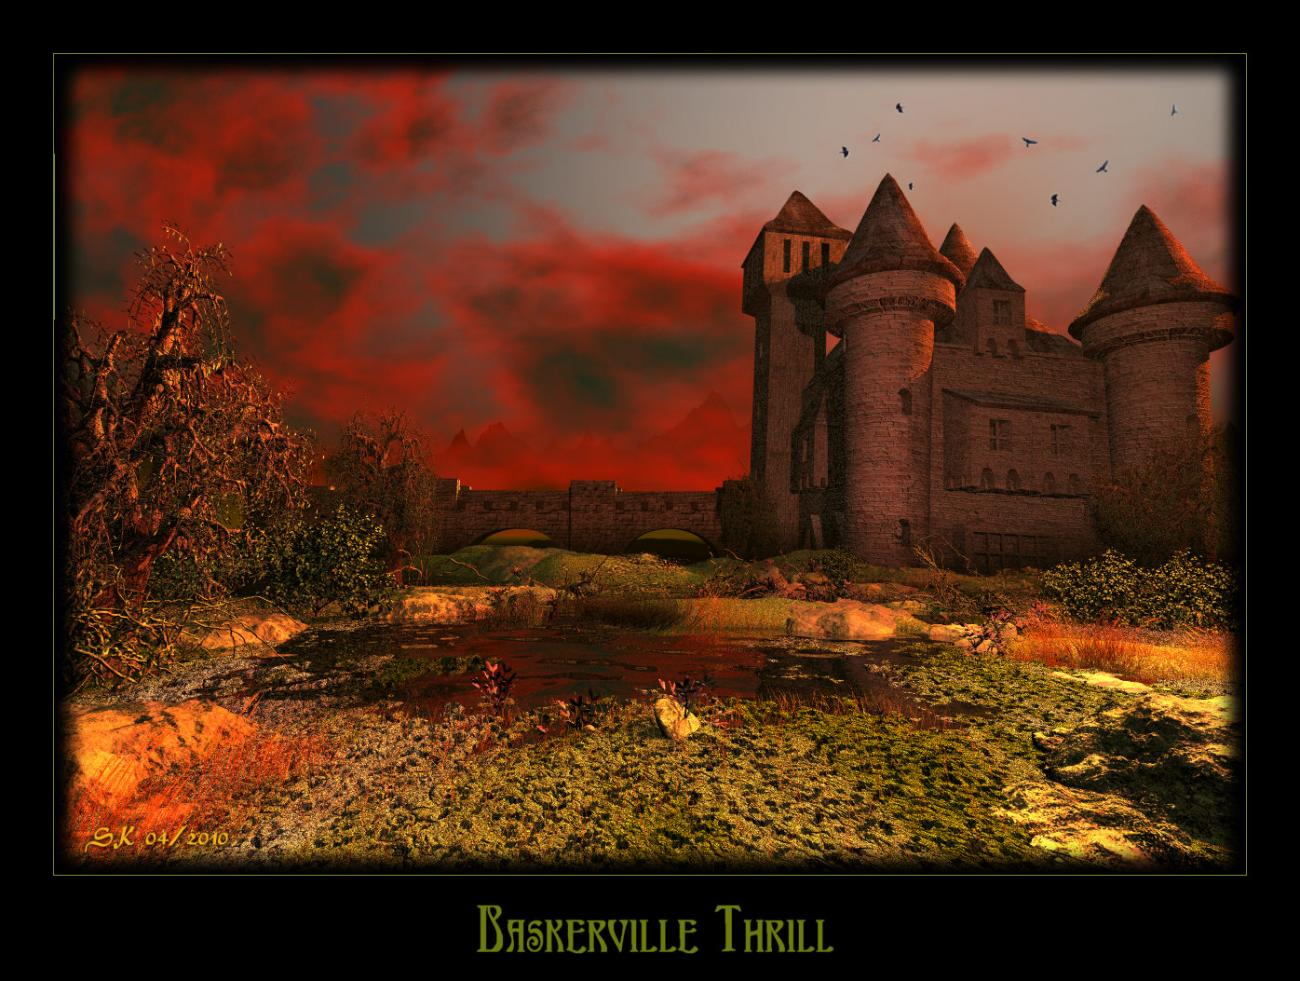 Baskerville Thrill